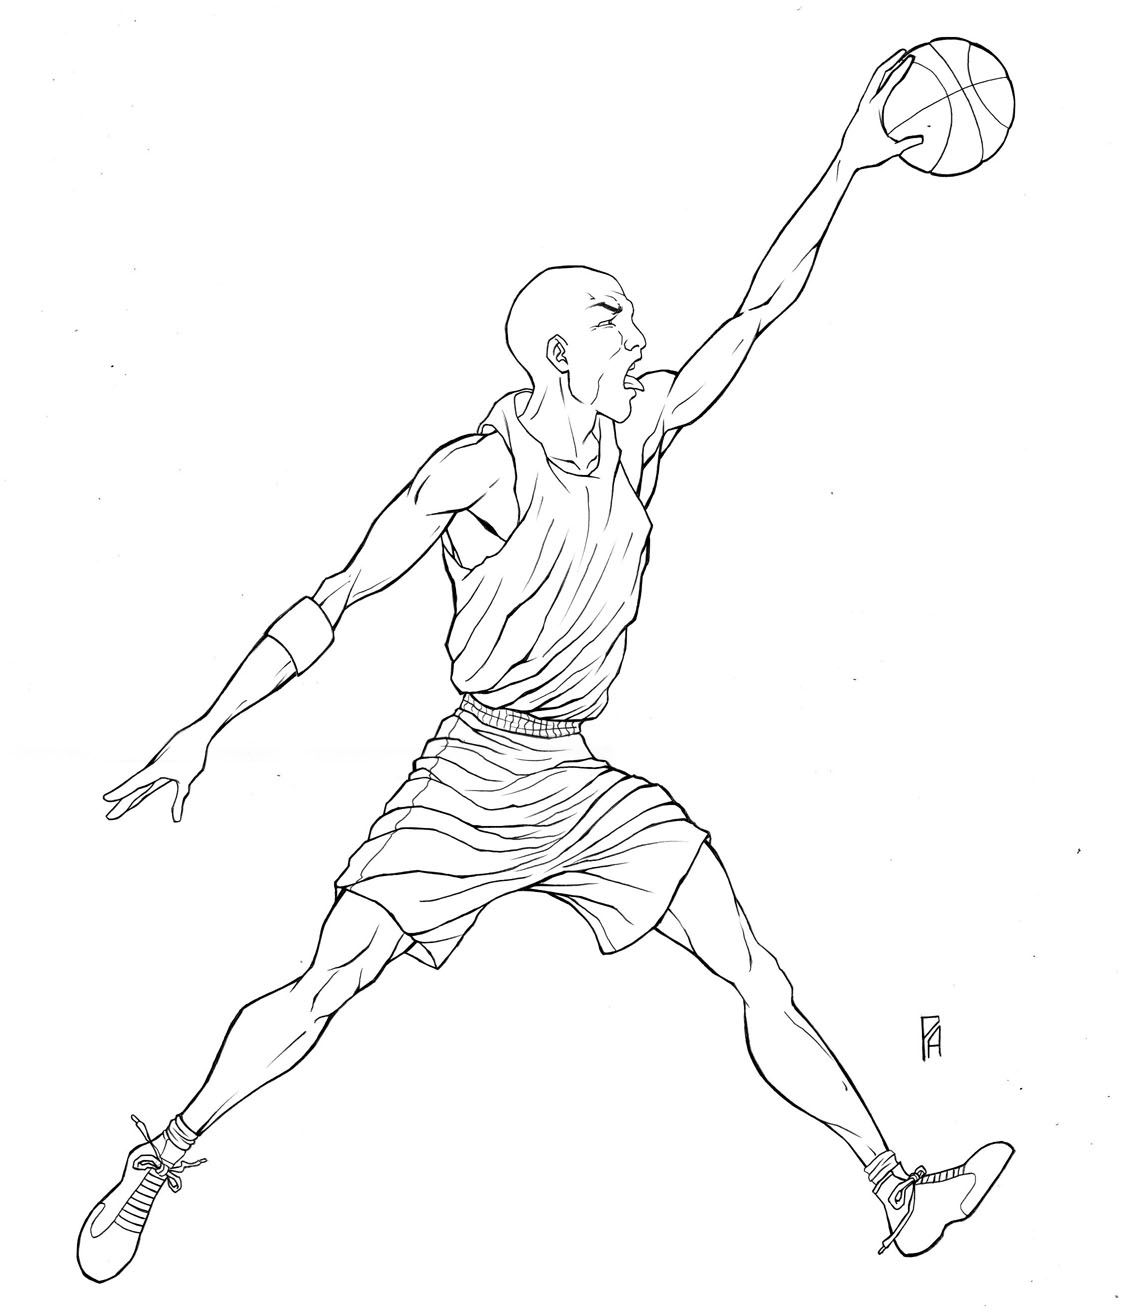 jordan coloring pages for kids - photo#12